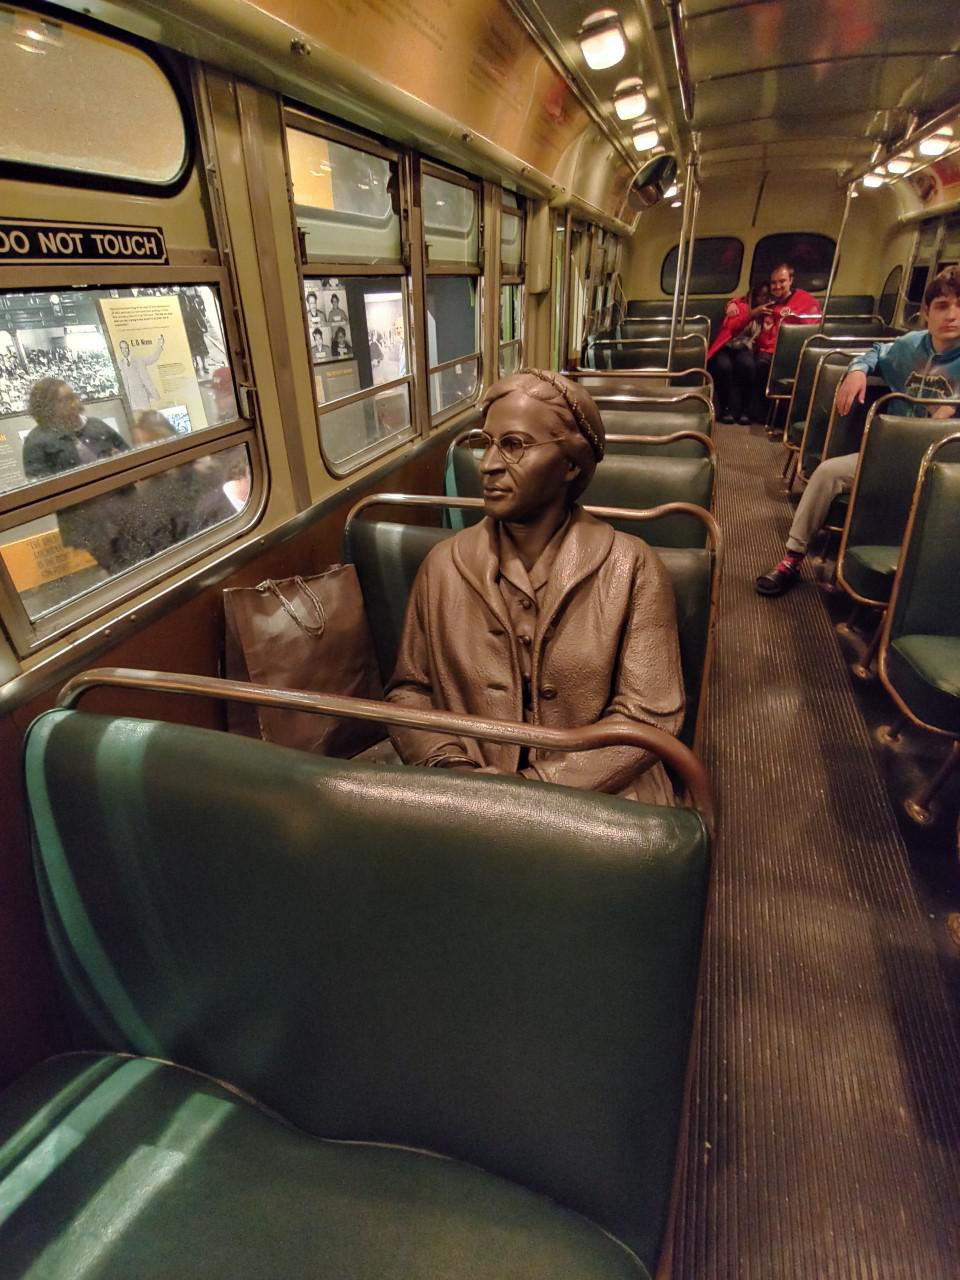 Visitors of this exhibit hear a recording of the driver admonishing Rosa Parks to get up and move to the back of the bus.